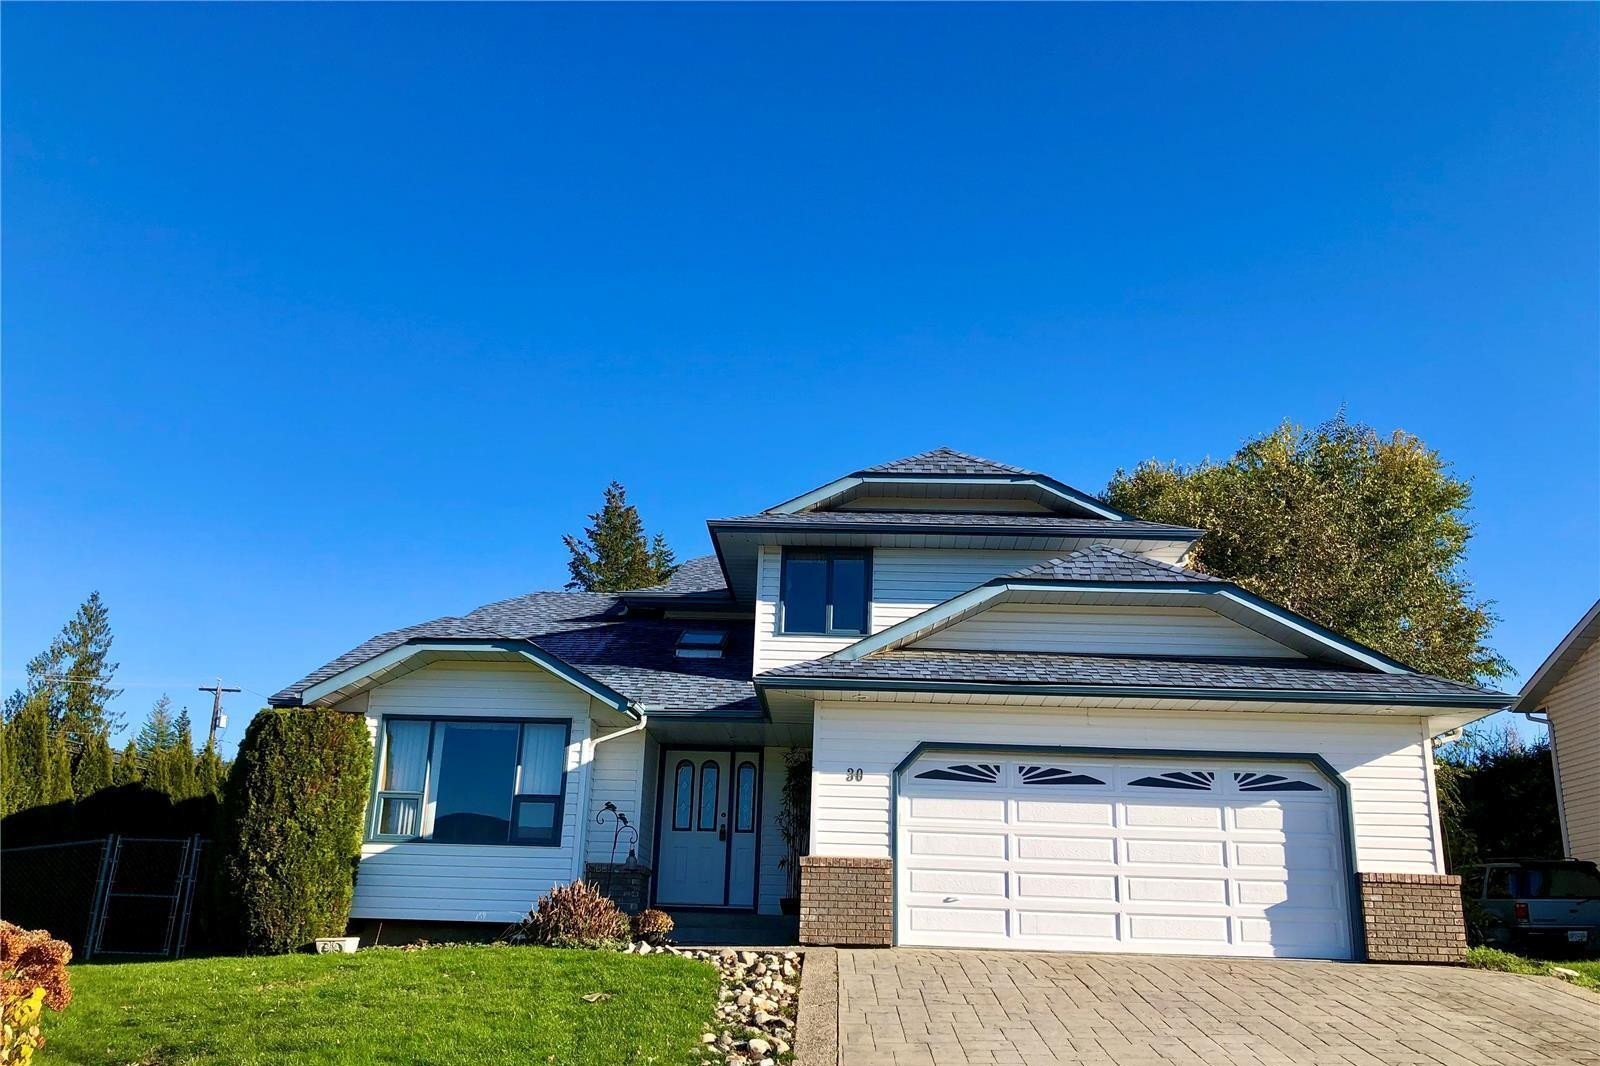 House for sale at 30 23 St Southeast Salmon Arm British Columbia - MLS: 10218231